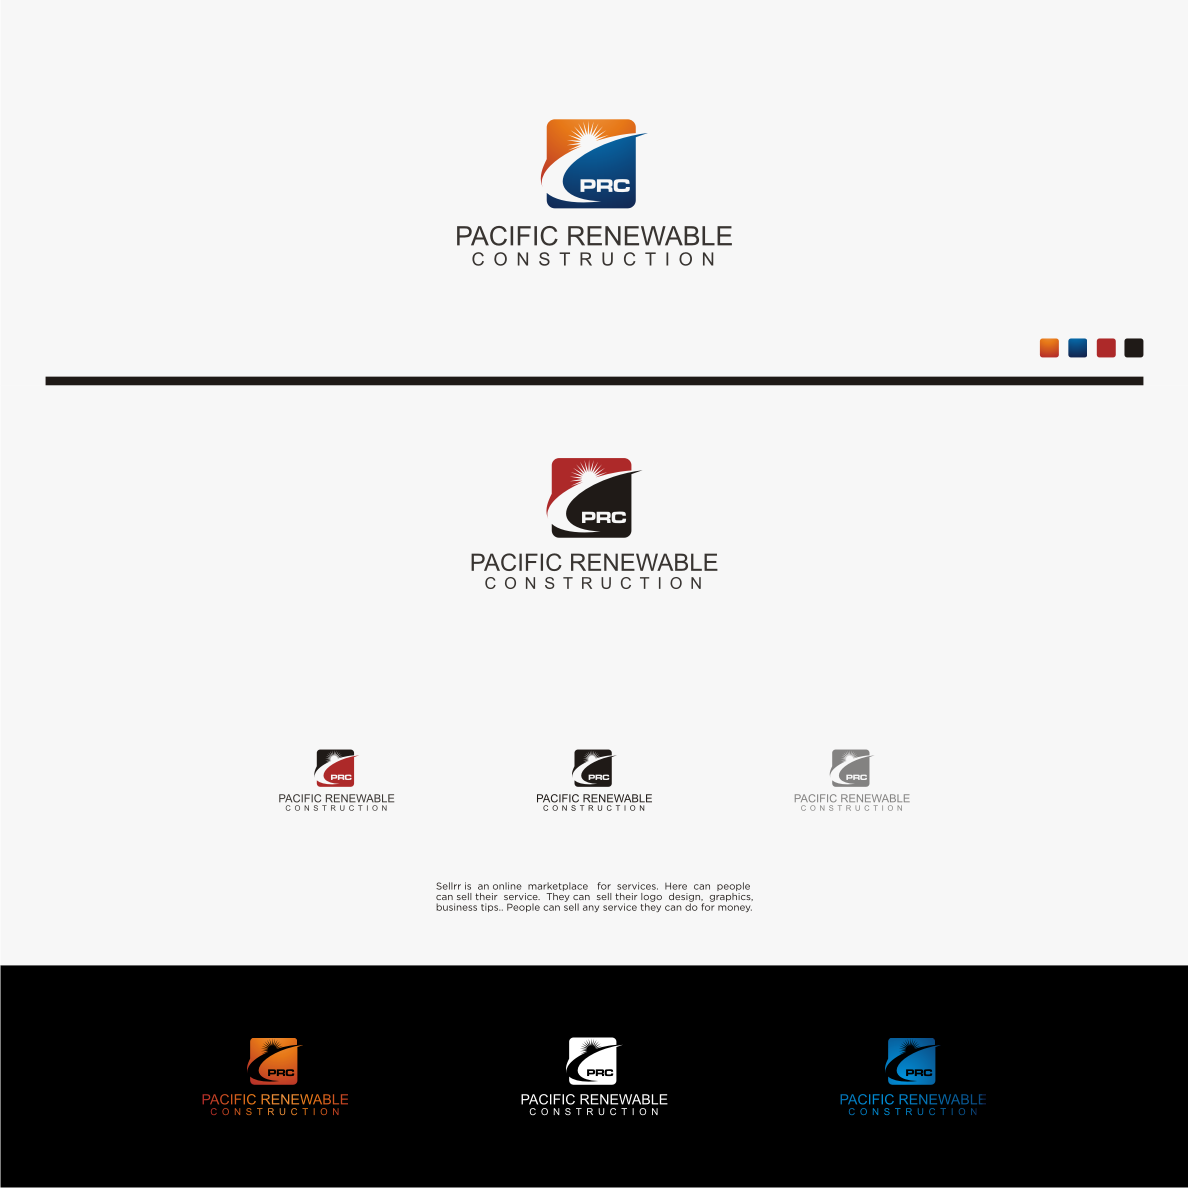 Overused logo designs sold on 99designs.com | Shapes with swoosh ...